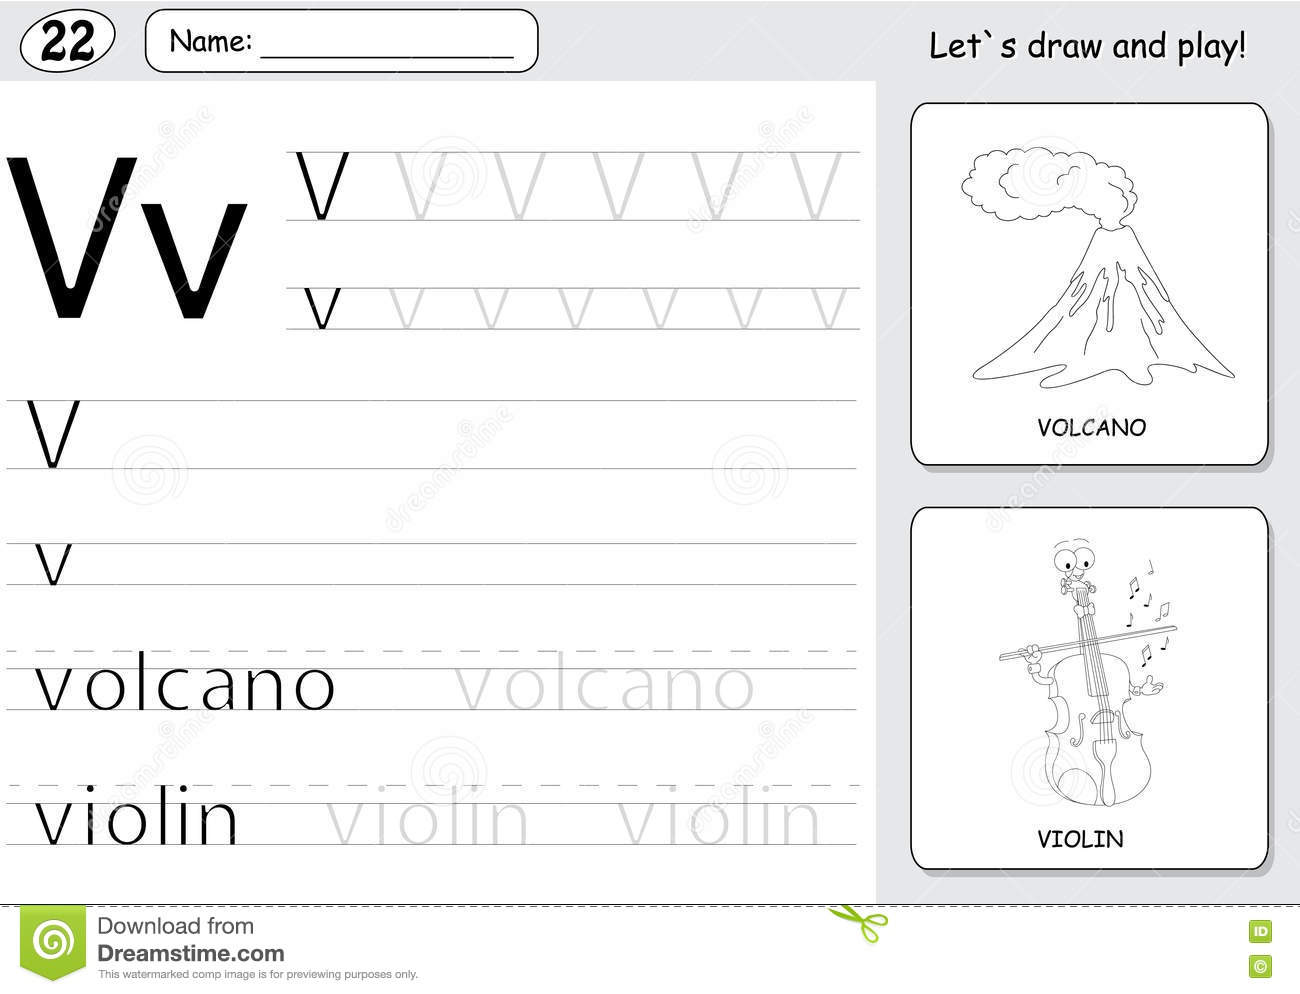 Worksheet Volcano Worksheet Worksheet Fun Worksheet